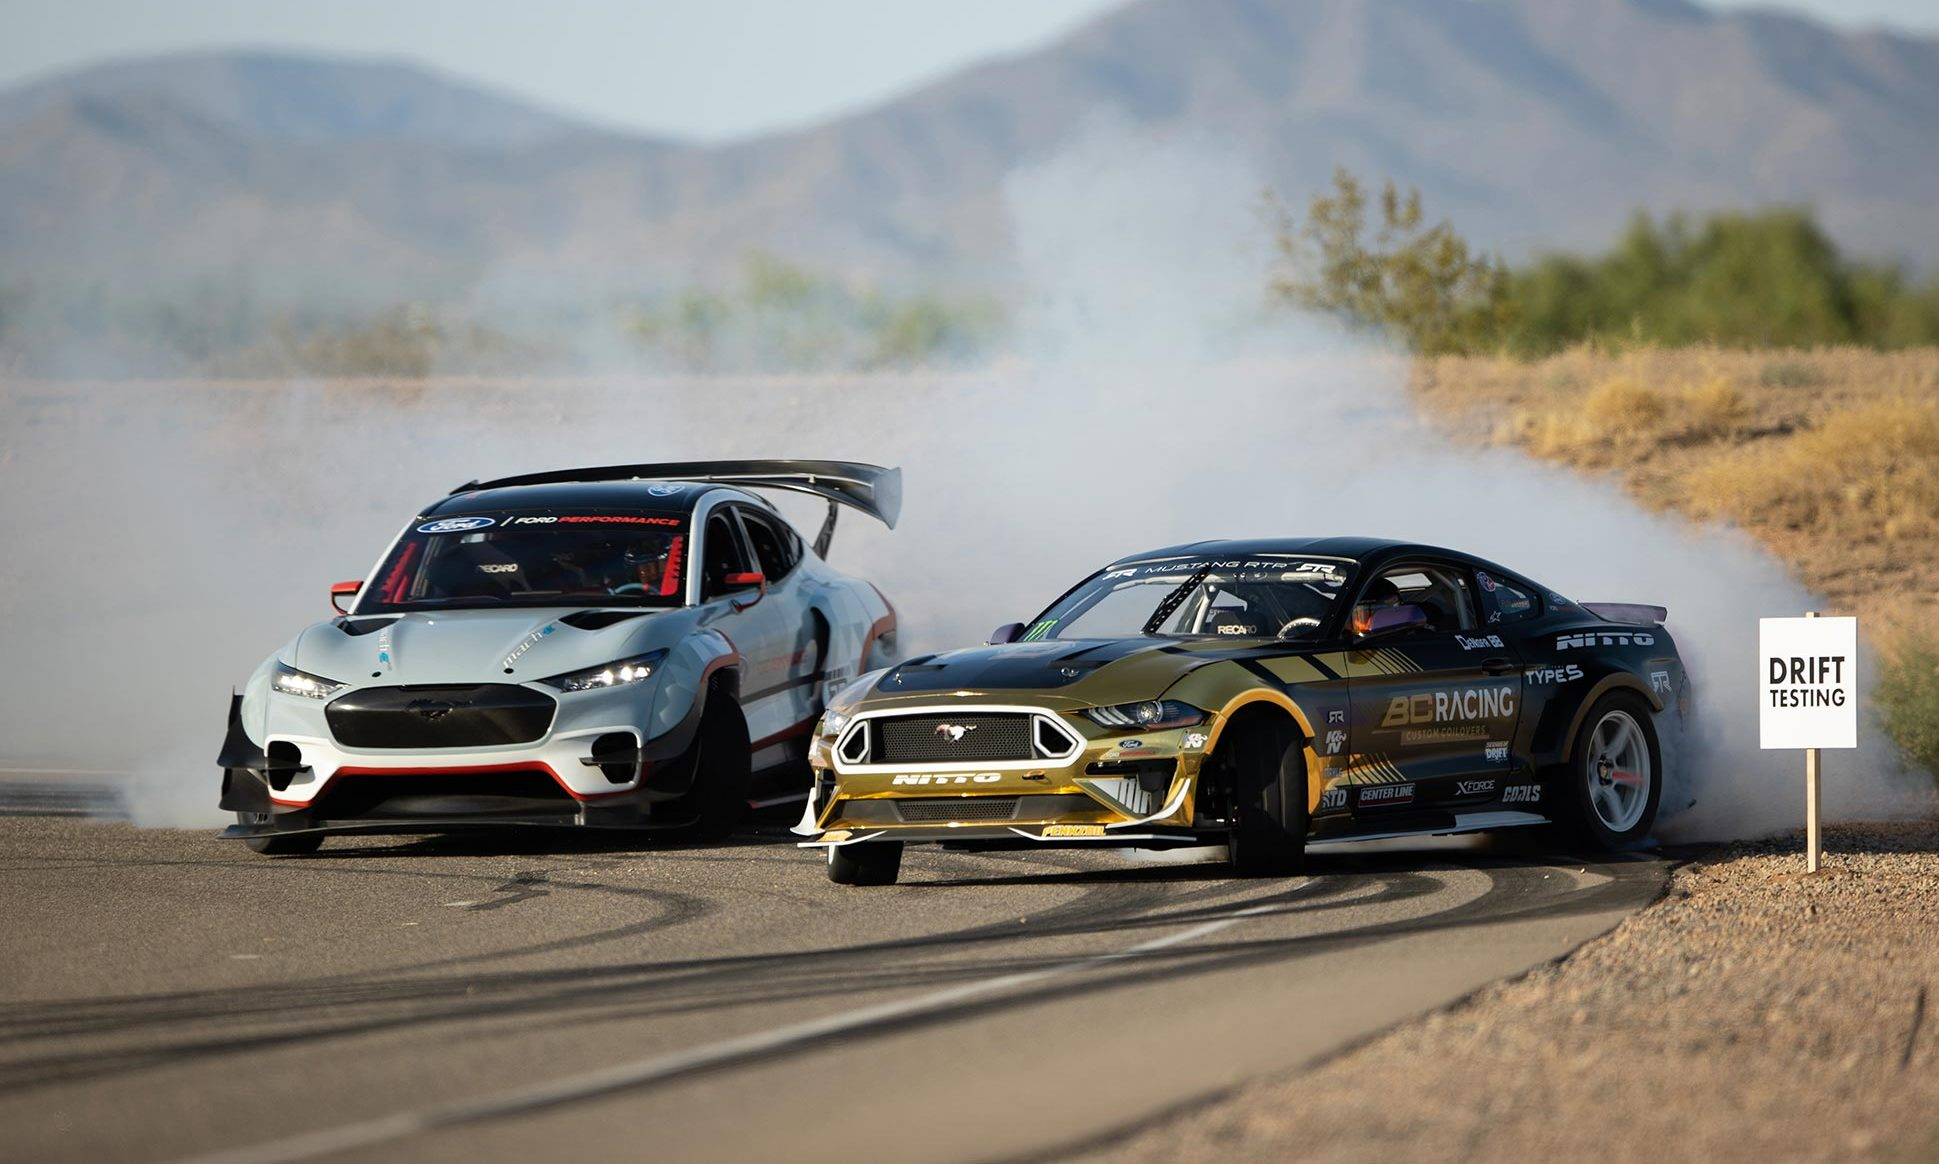 Ford Mustang Mach-E 1400 Prototype drifting